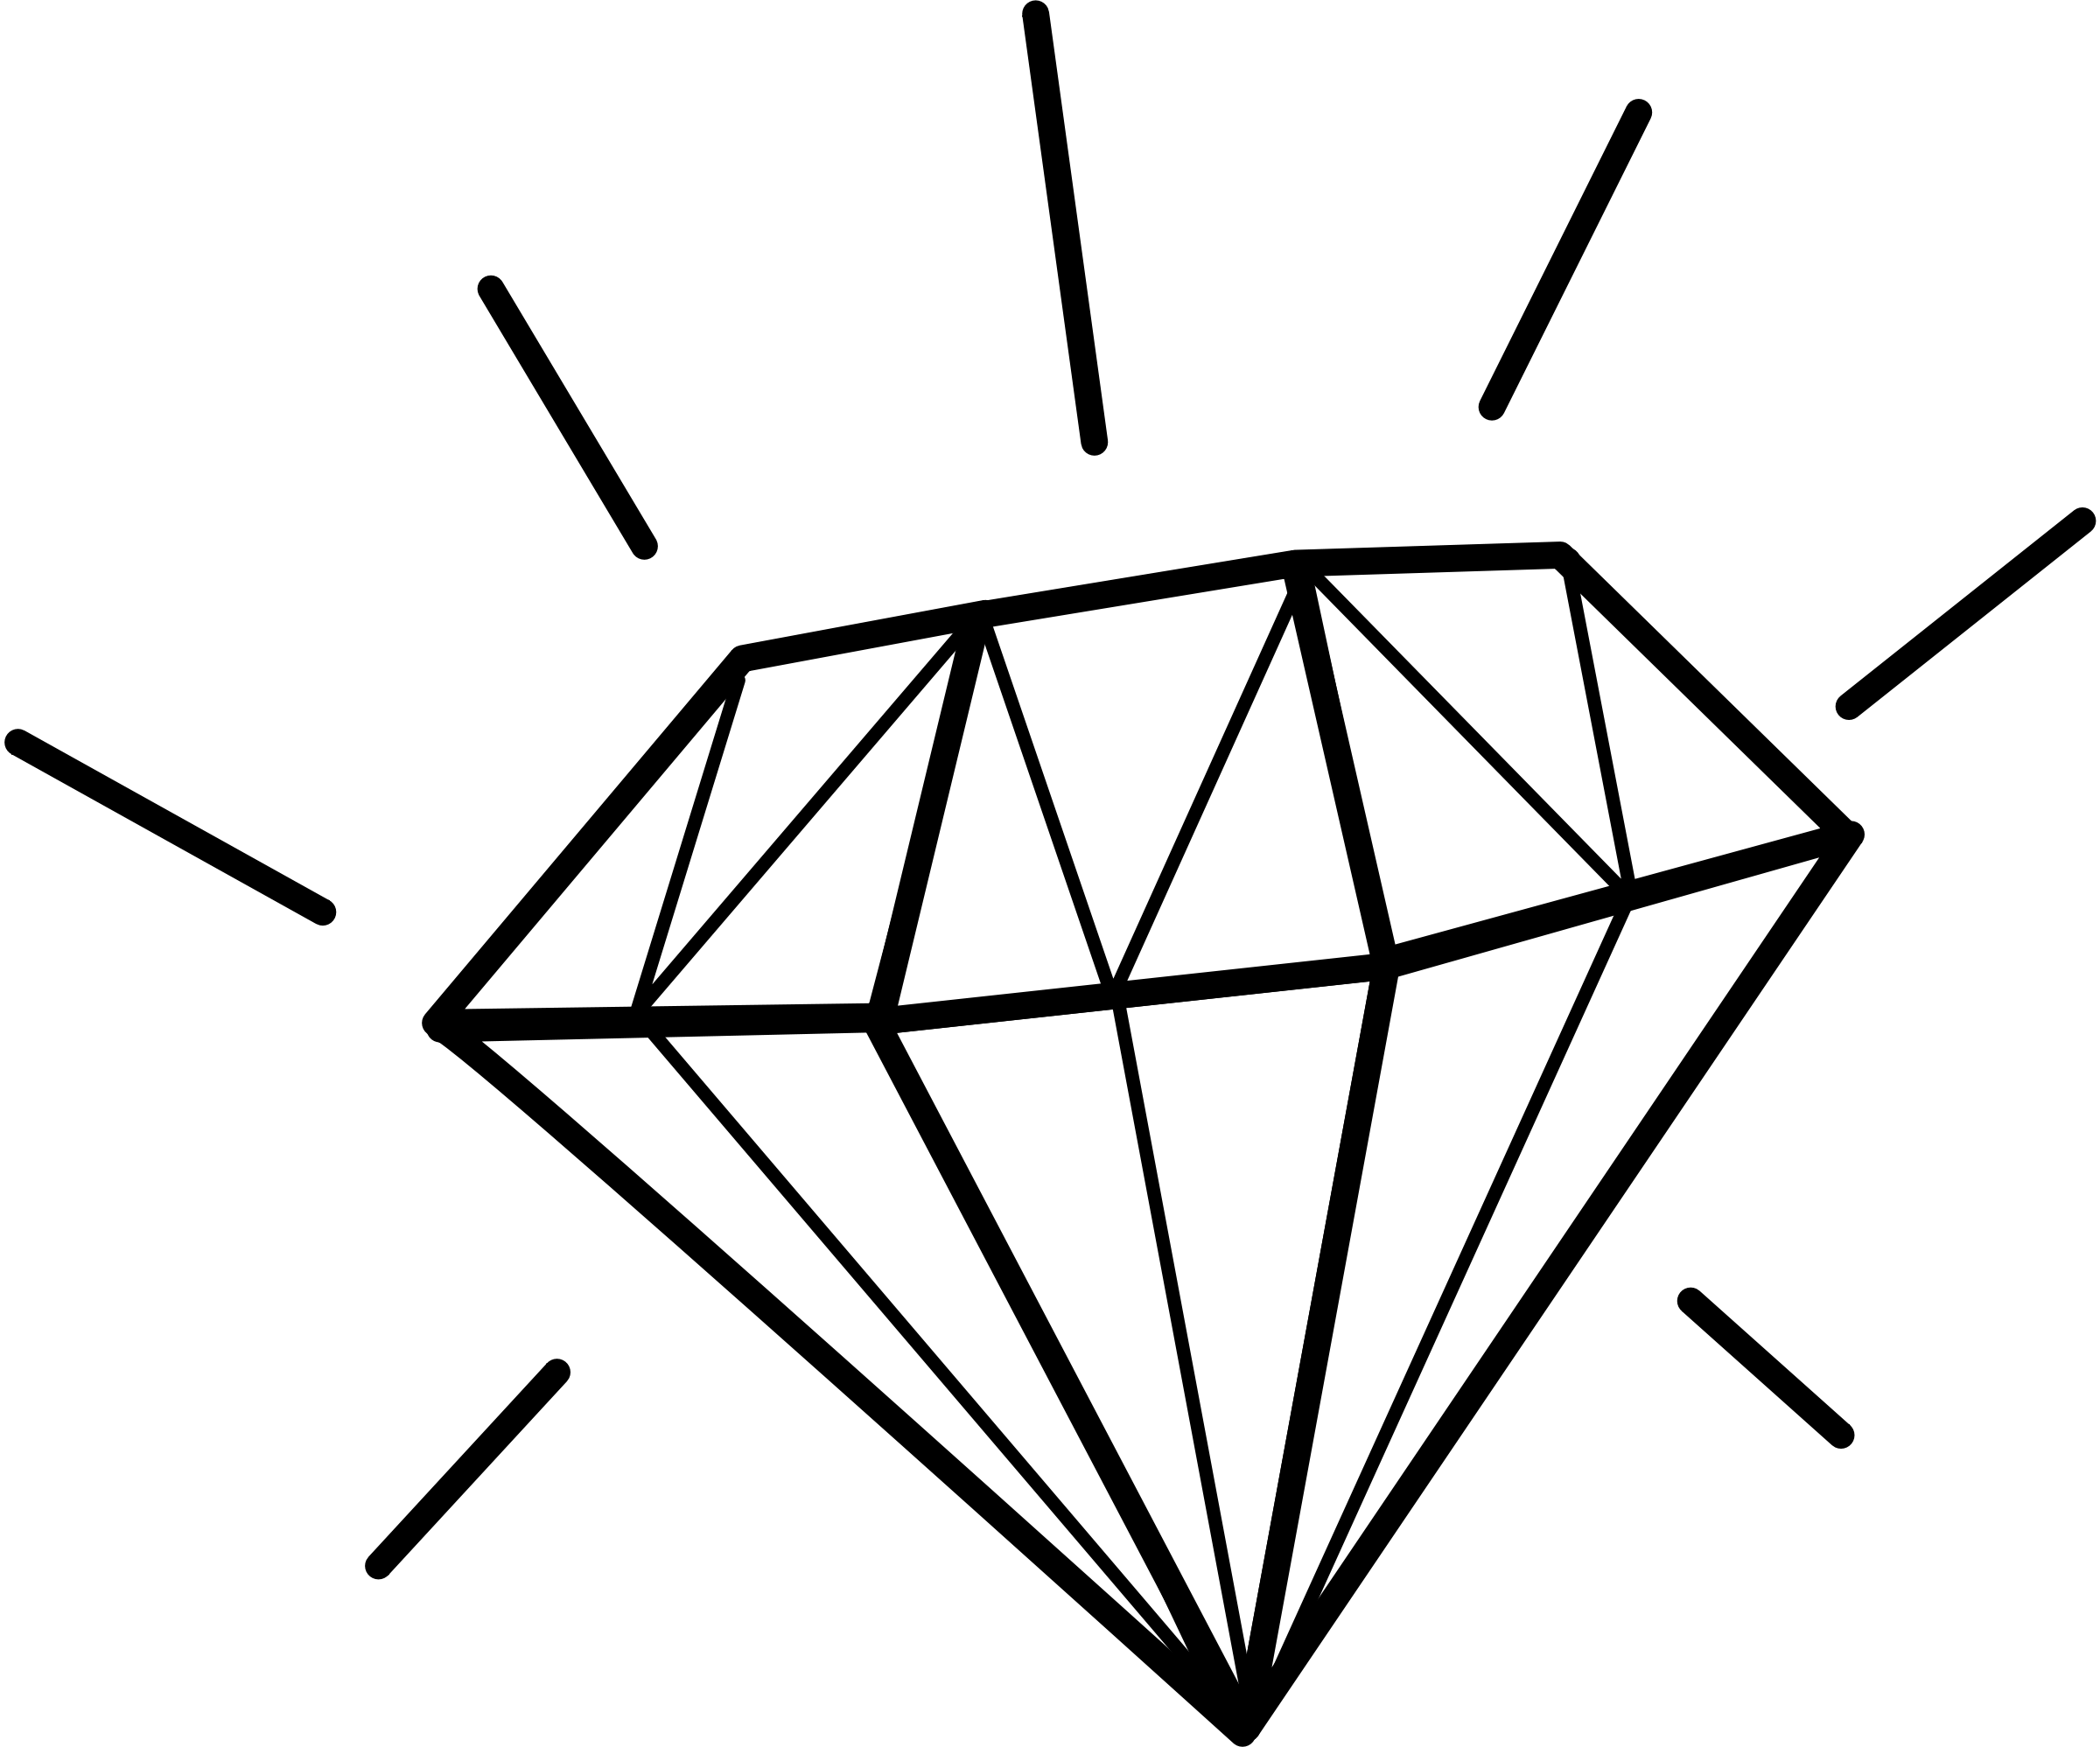 Diamond Clip Art - Diamond Clip Art